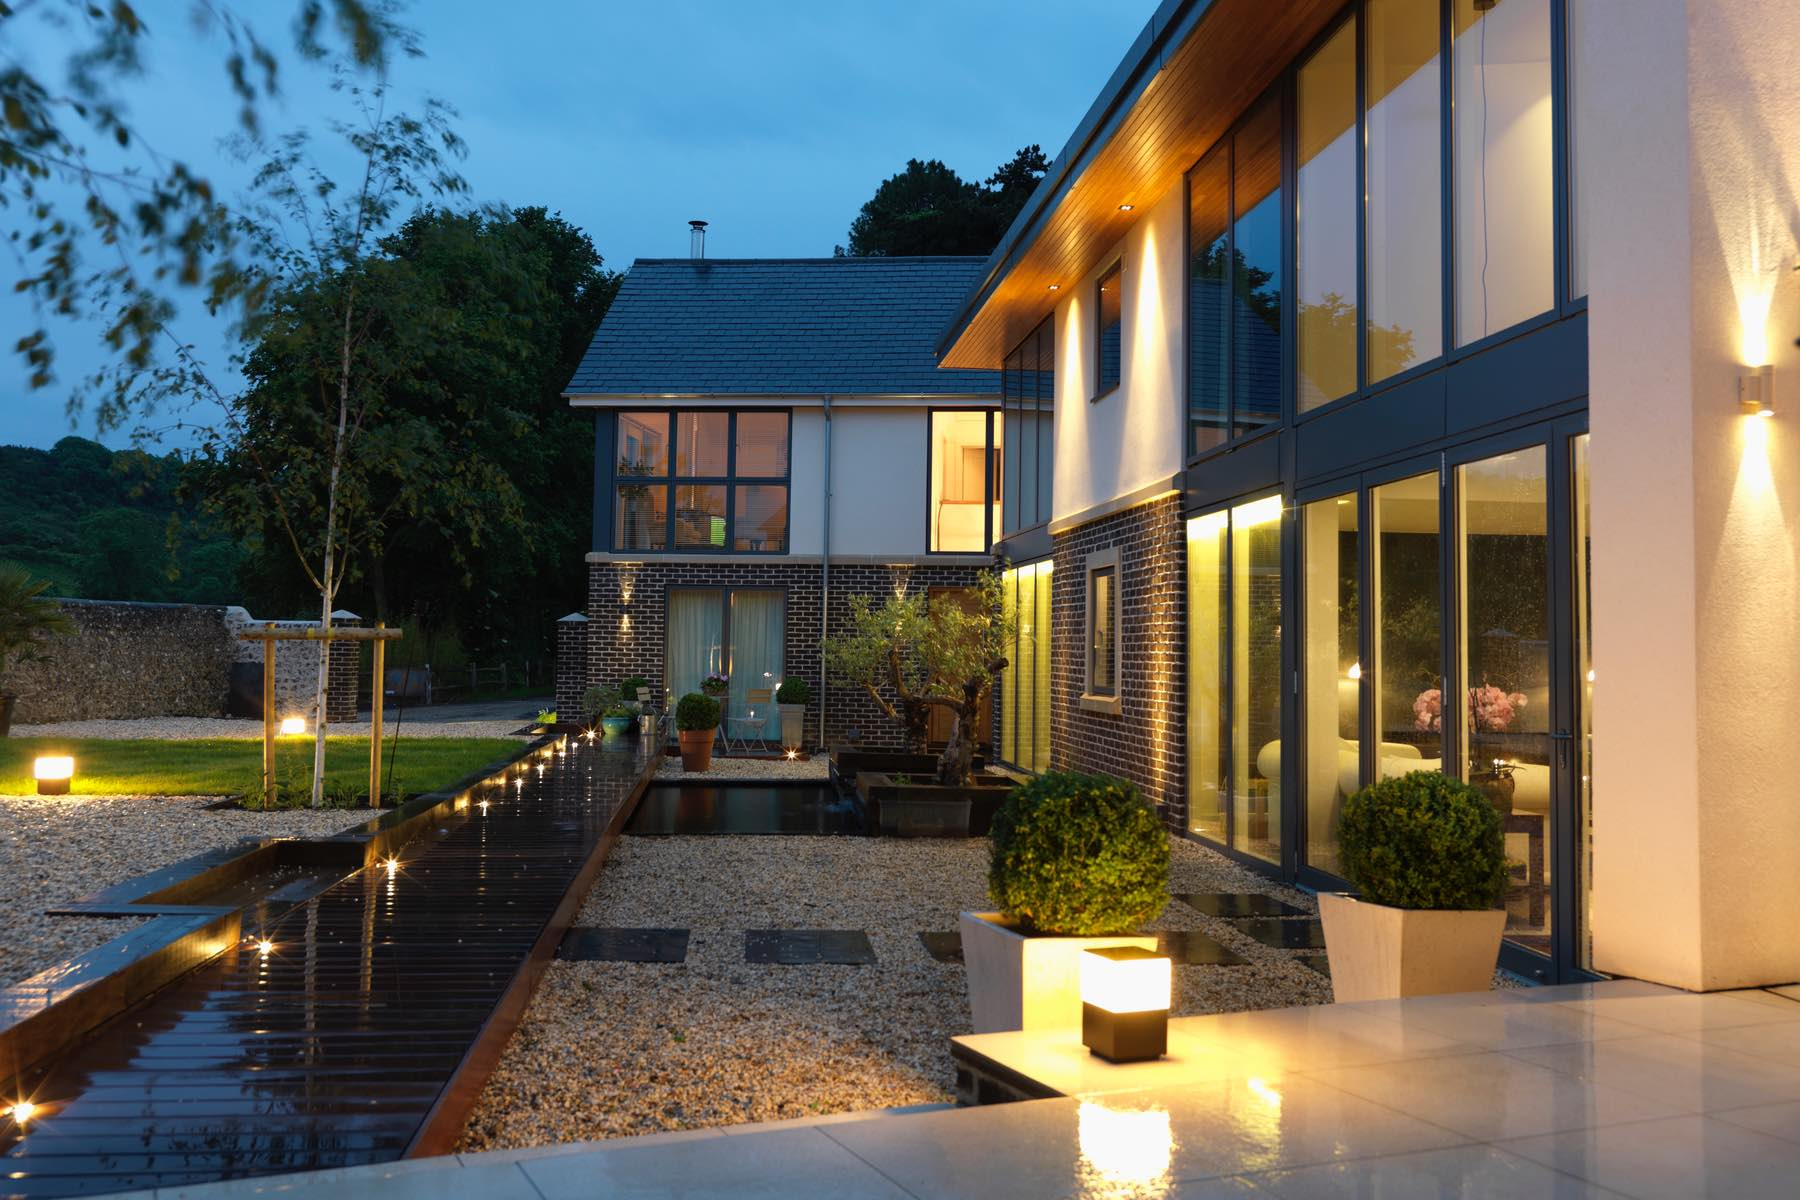 Commercial  U0026 Residential Lighting Design London  Sussex